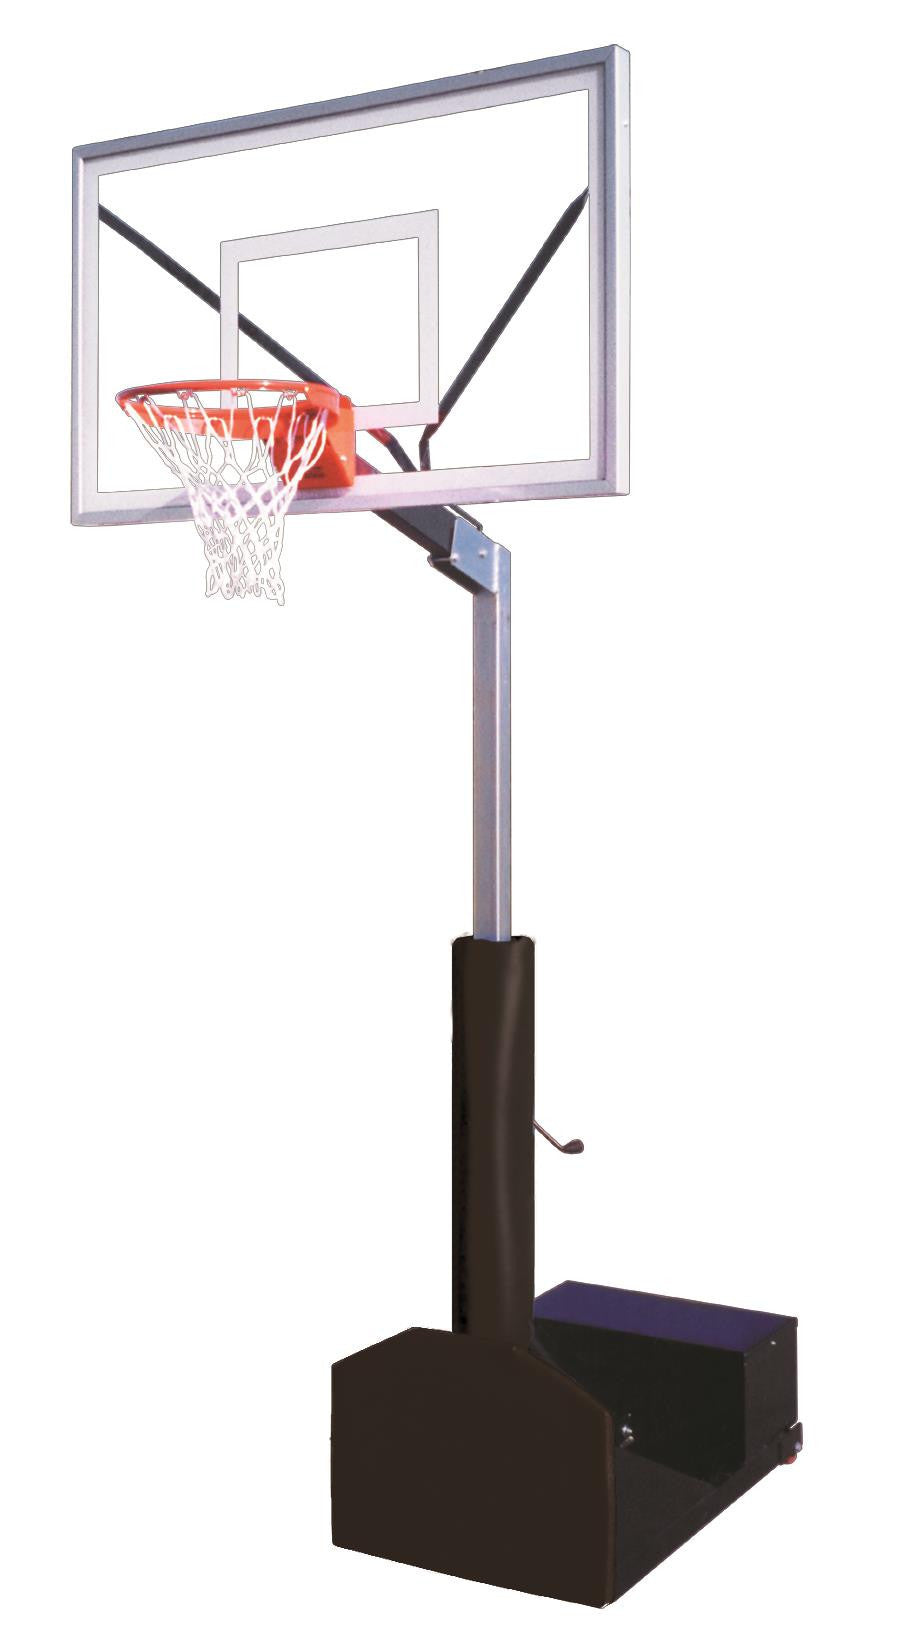 First Team Rampage Select Adjustable Portable Basketball Hoop 60 inch Acrylic